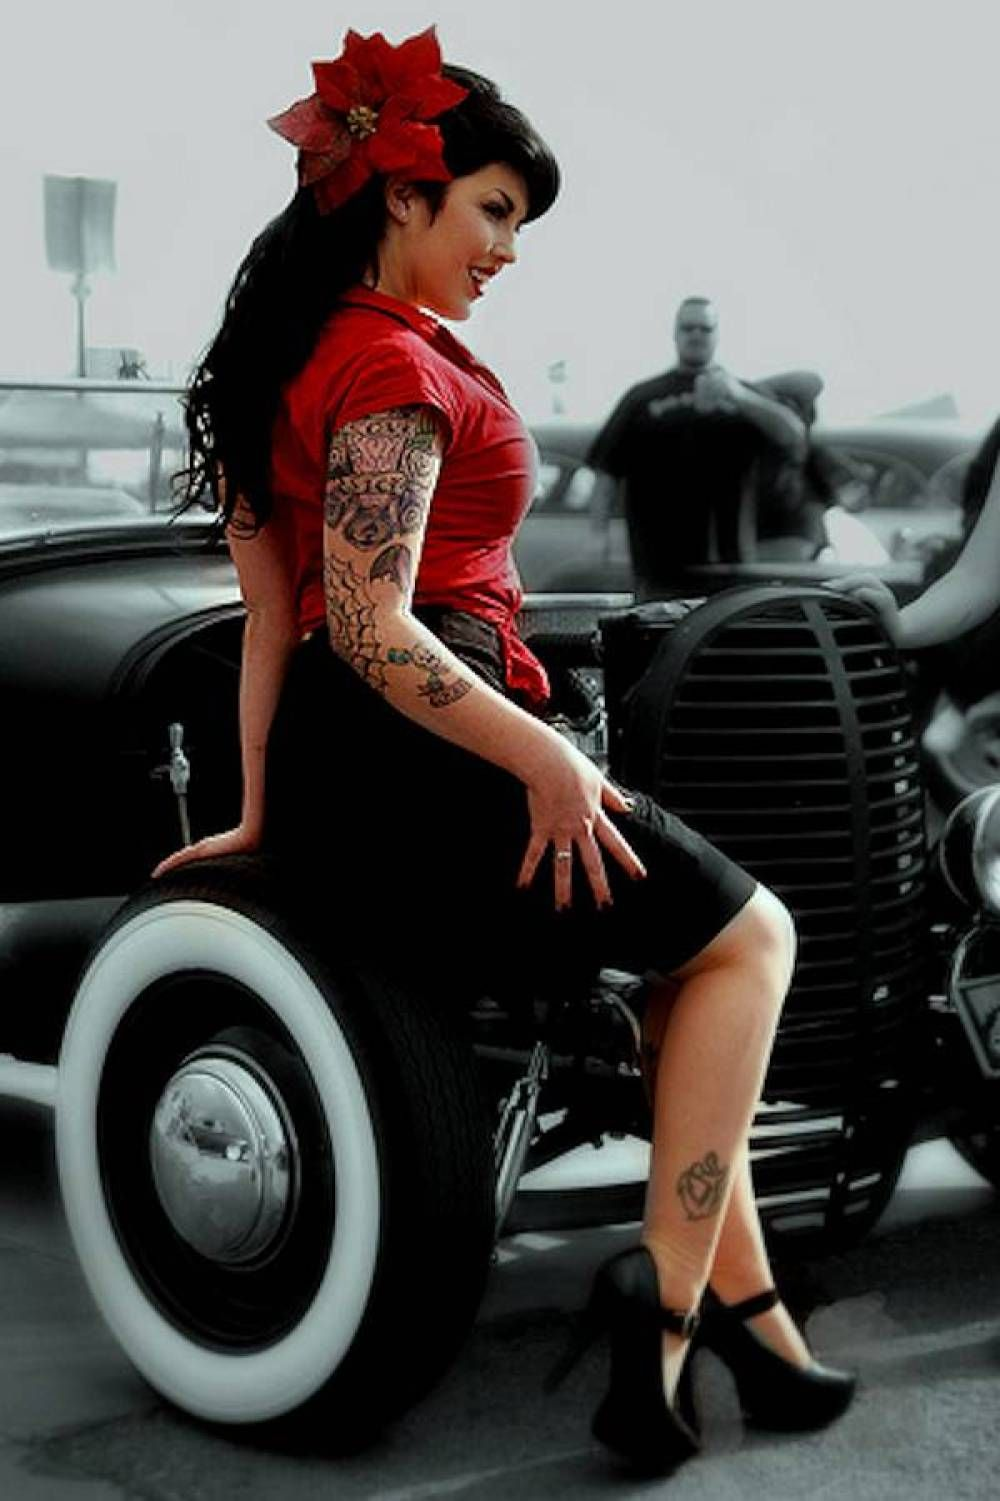 What that hot rod pin up girl on harley consider